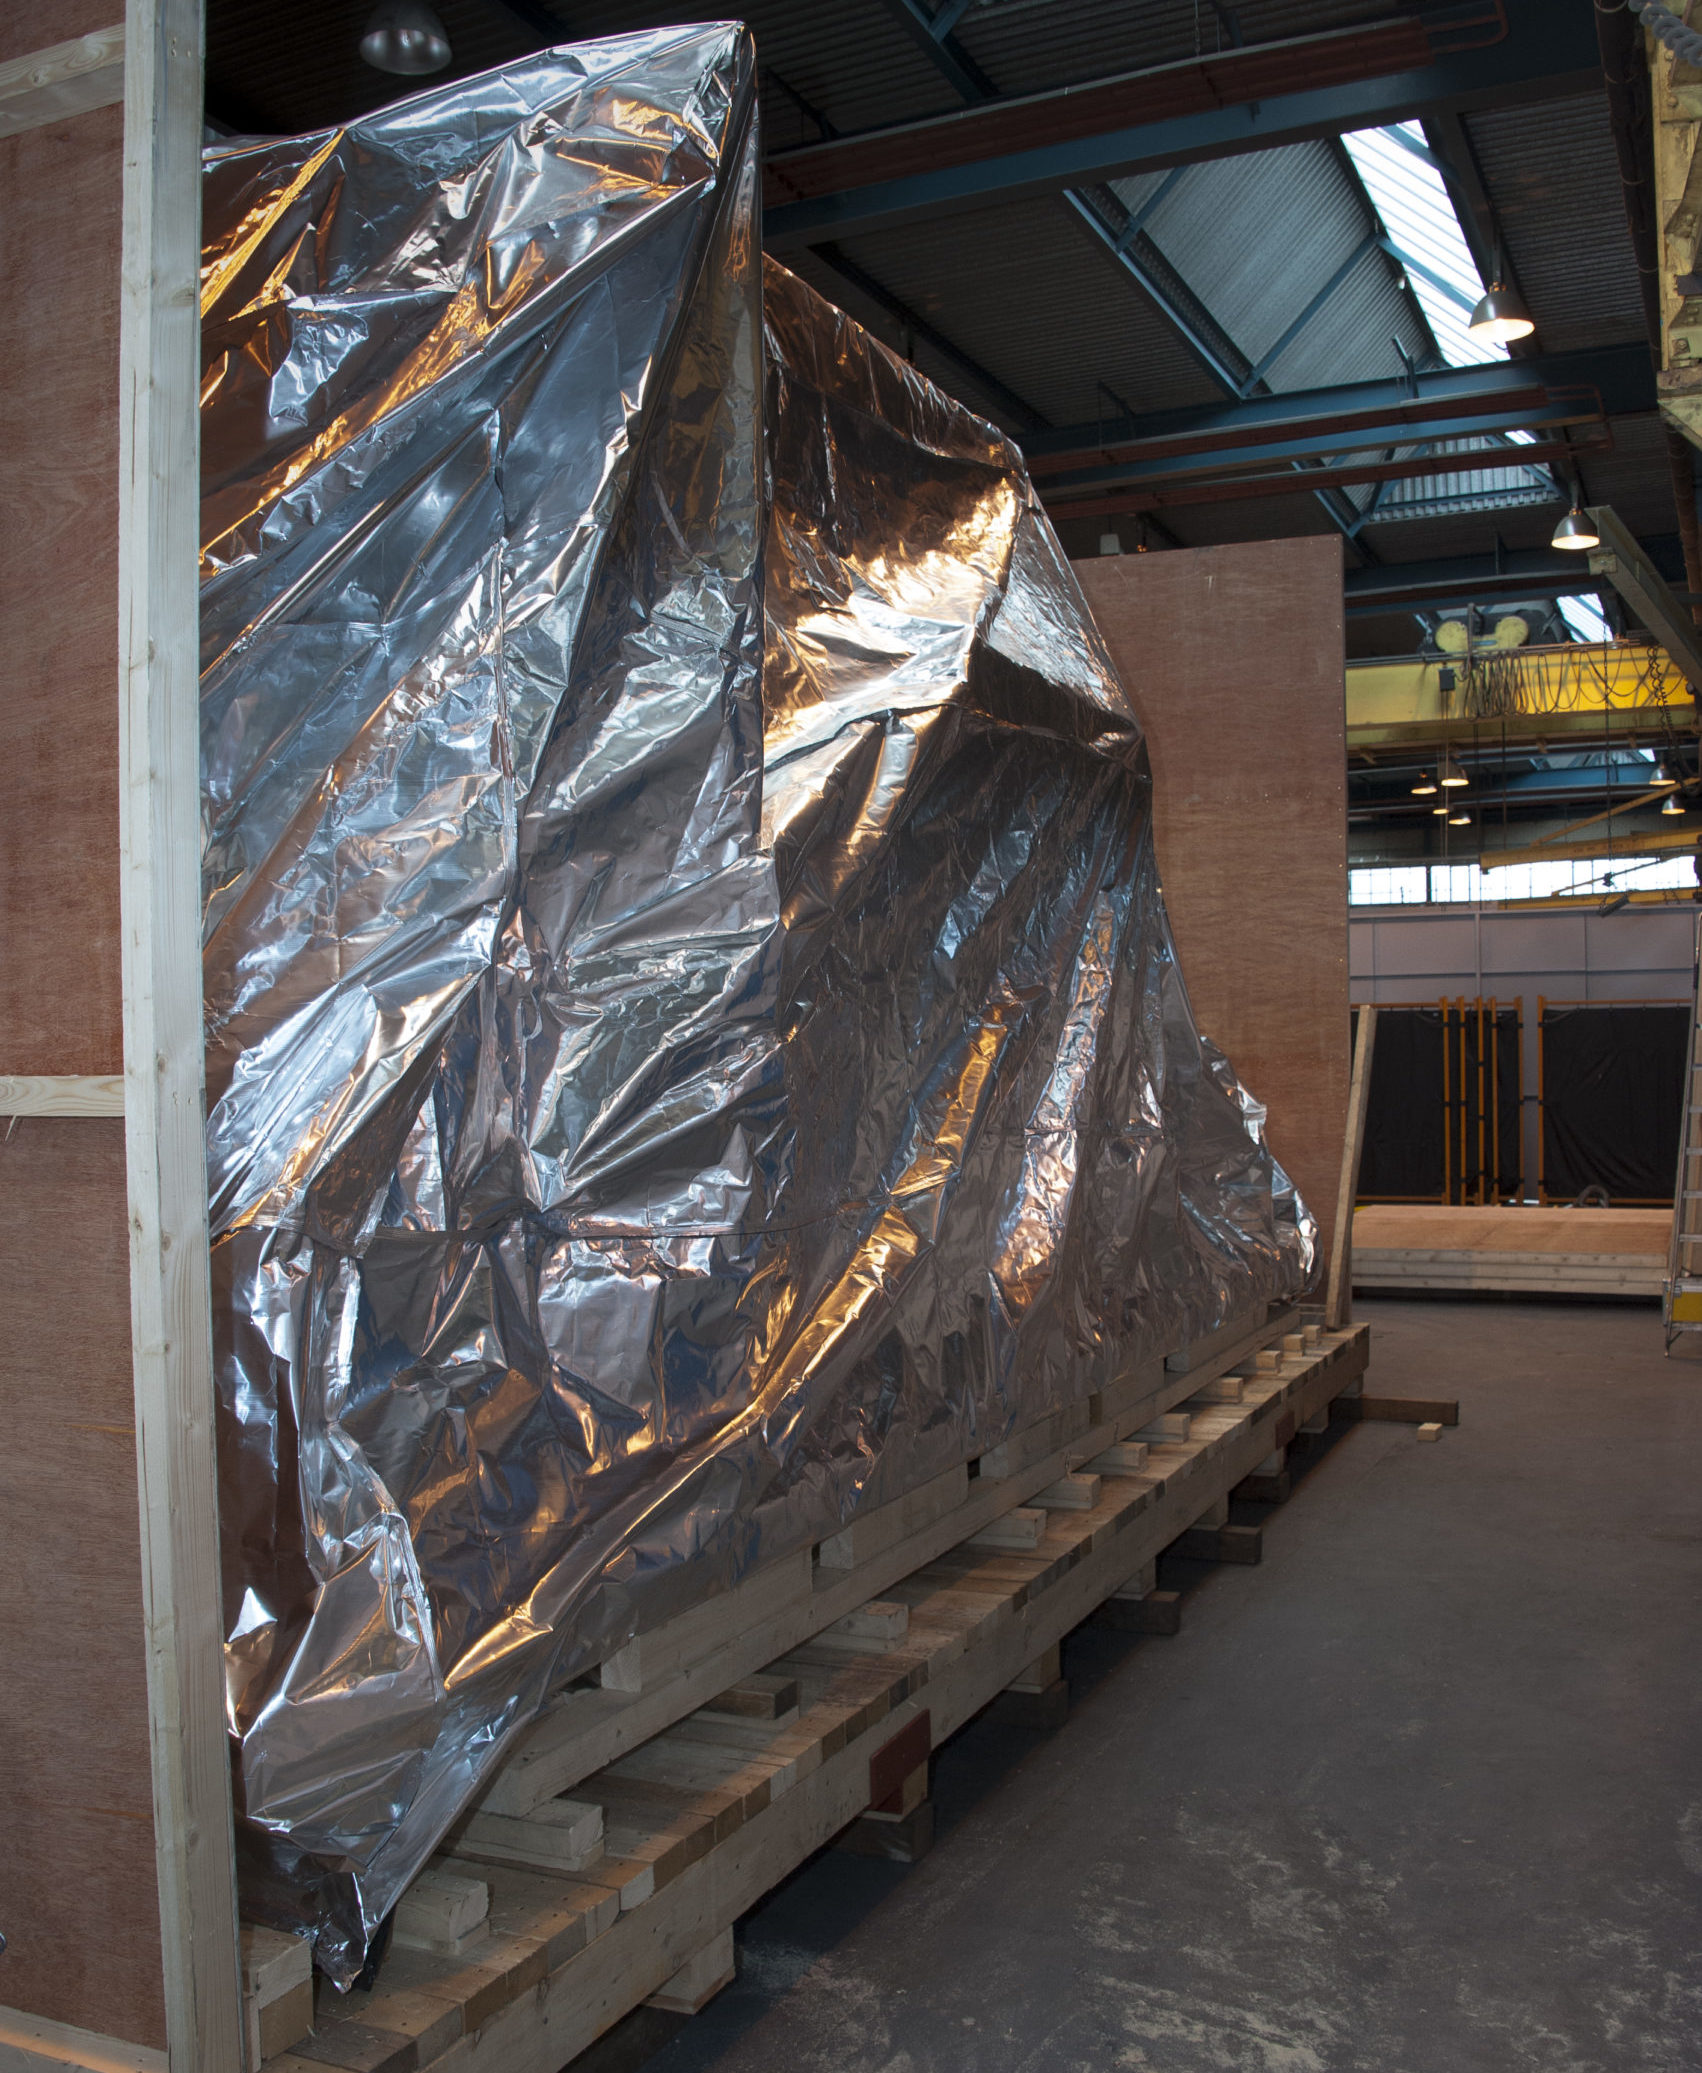 foil packing